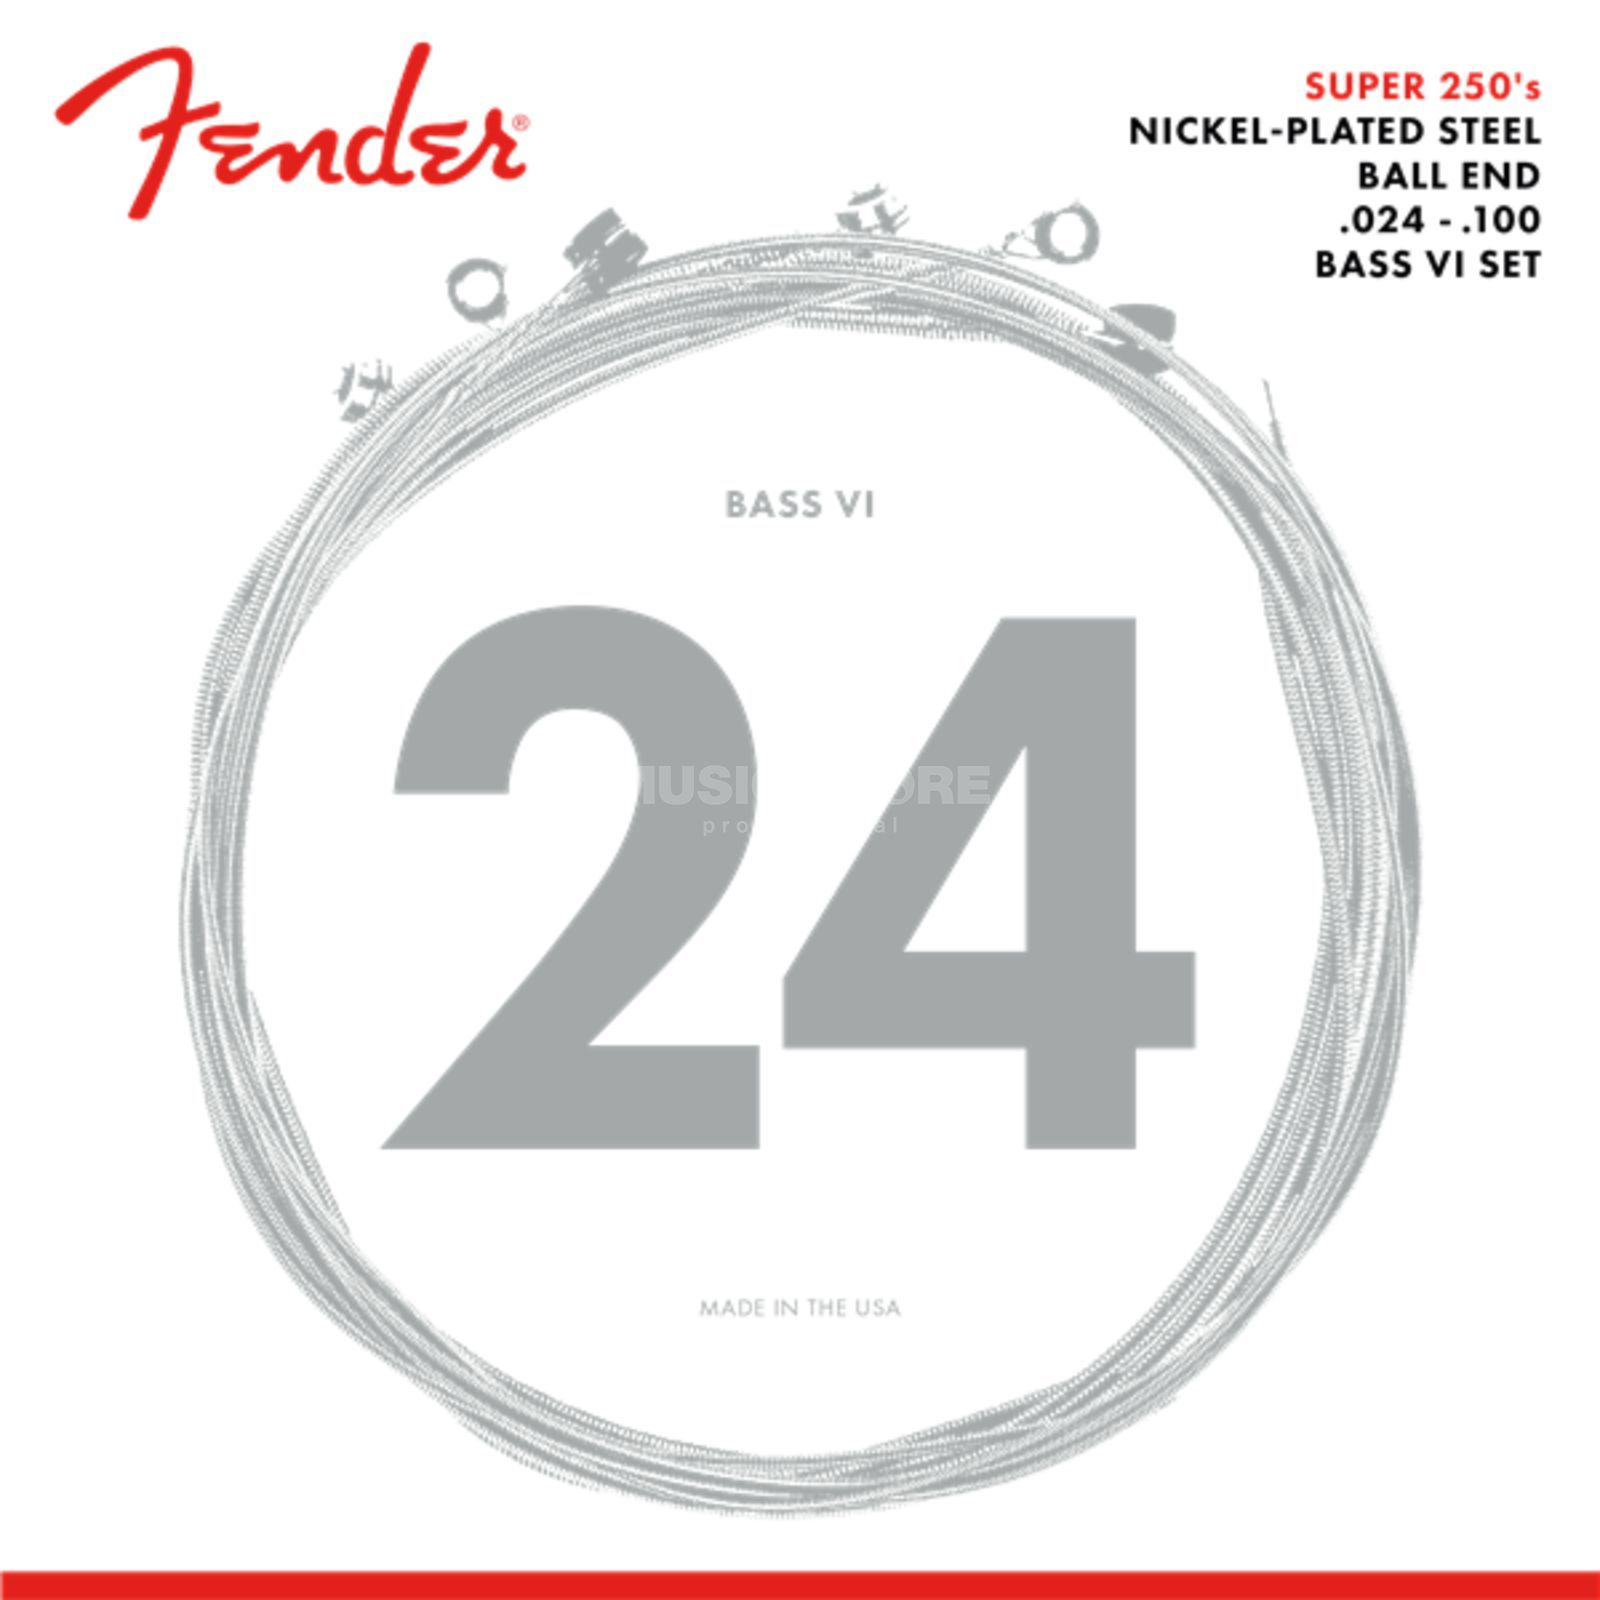 Fender Strings Bass VI 250B6 24-84 Nickel Pl., Roundwound Image du produit